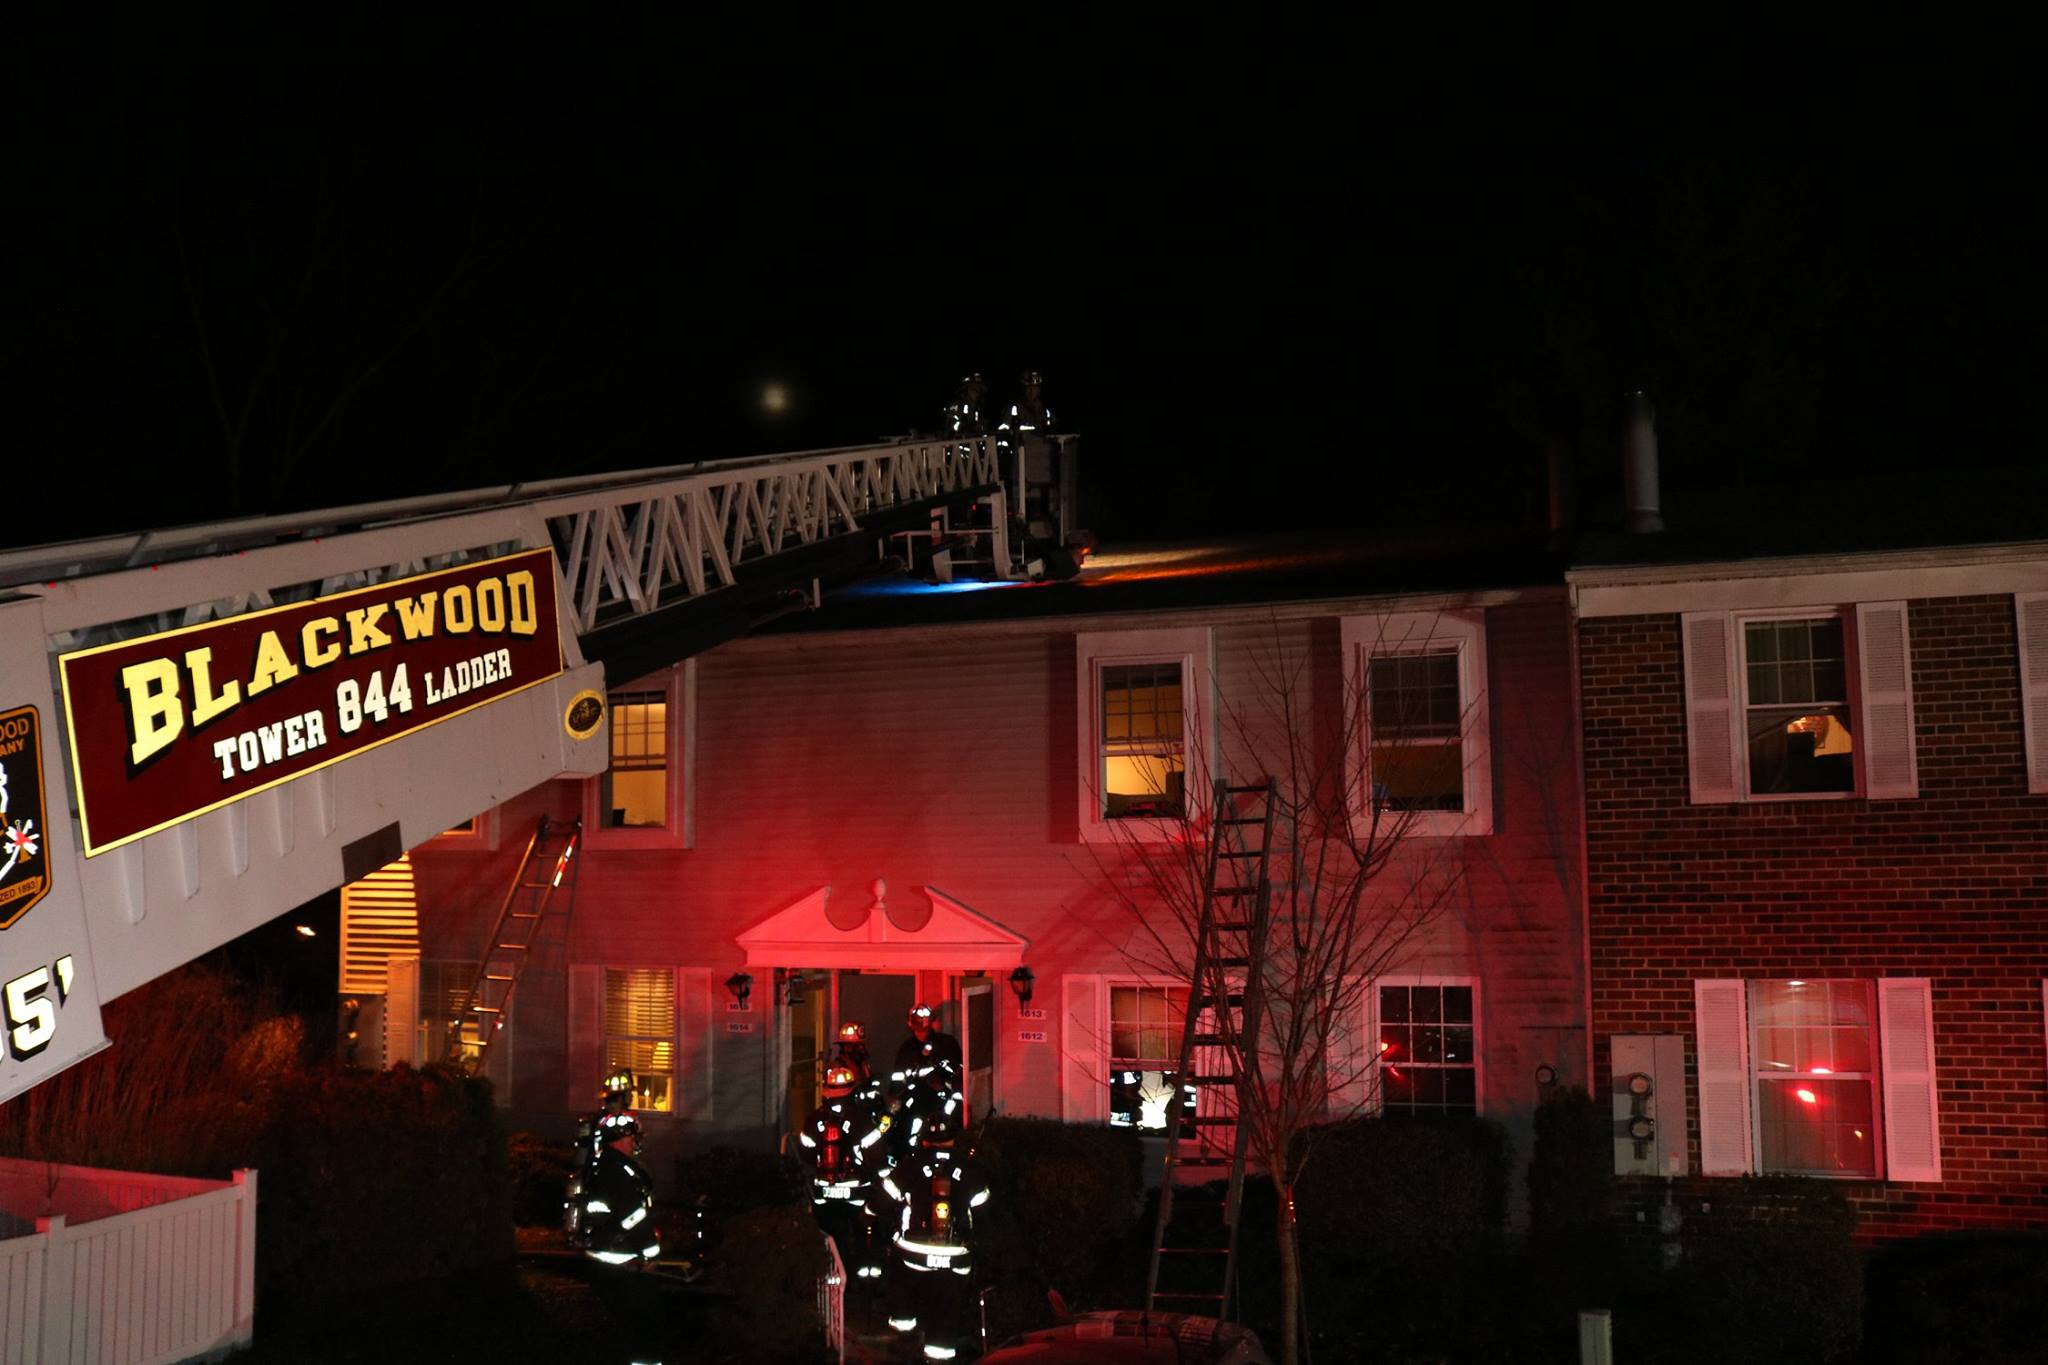 Ladder 84's Main set up to the Roof to prepare for ventilation.